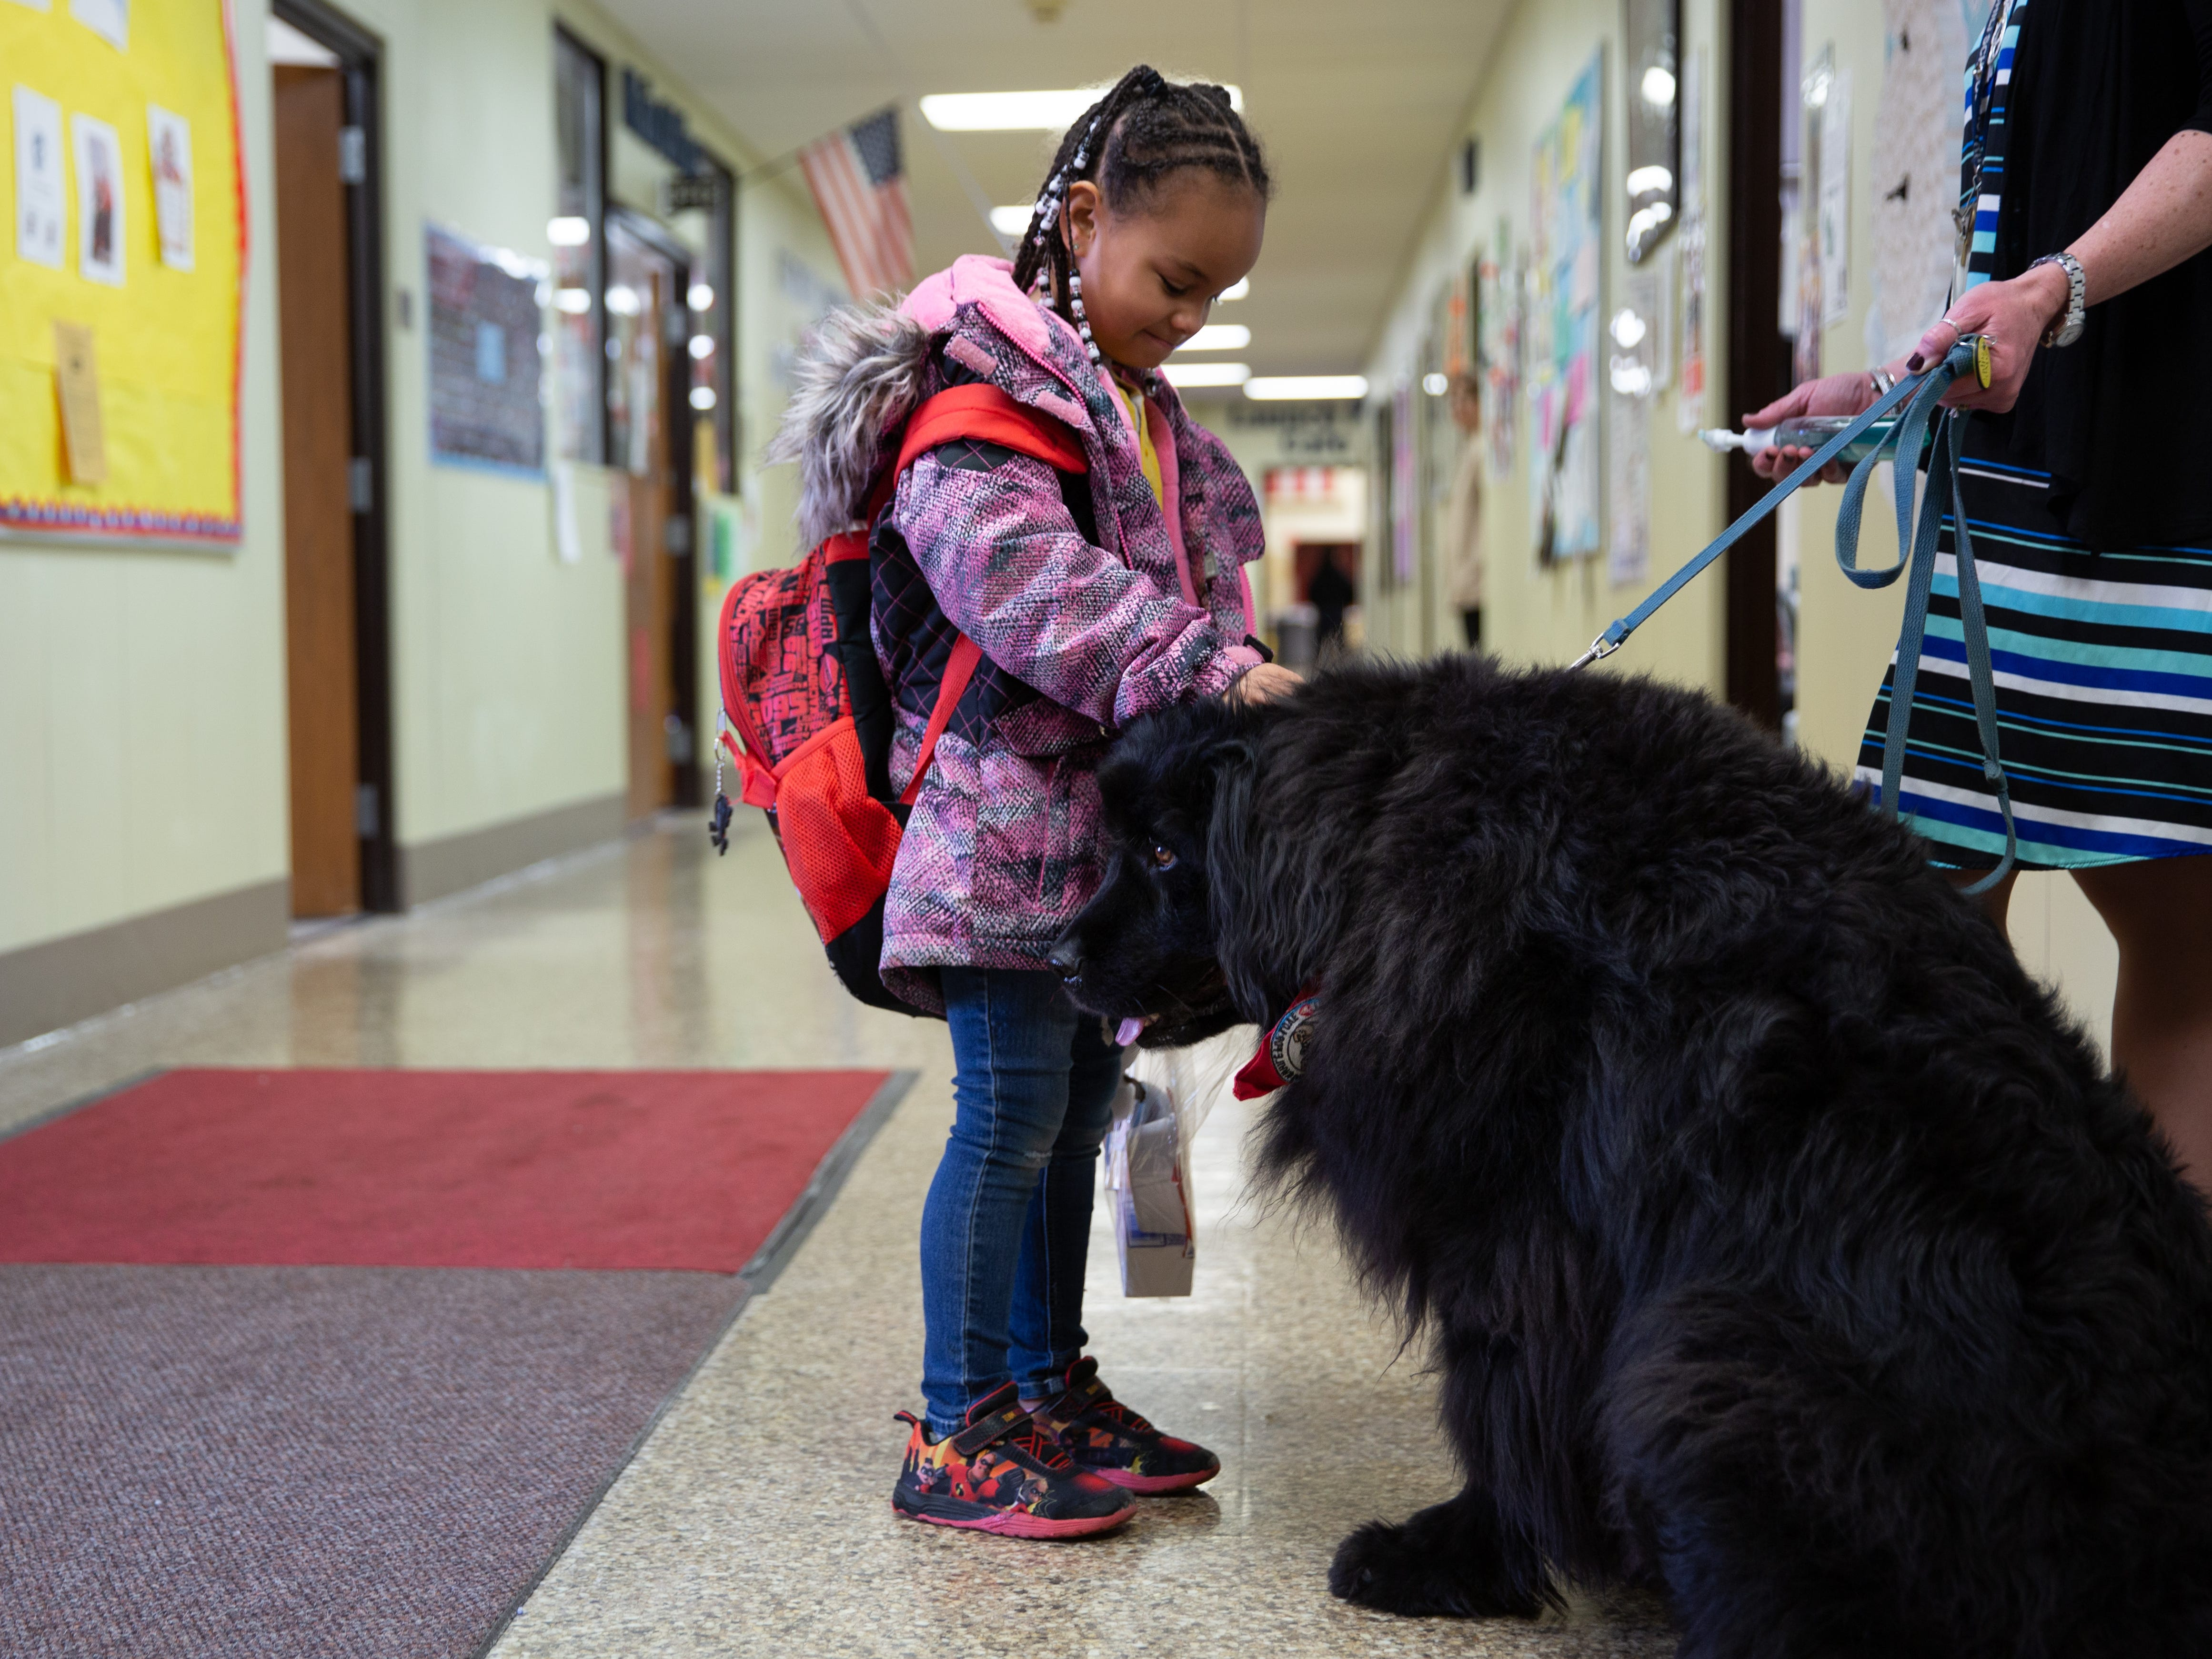 Sophia Cruz, a first-grader at Neil Armstrong School in Gates, greets Kelsey on her way into school on Monday, Feb. 4, 2019. Kelsey, a Newfoundland, serves as the school's certified therapy dog and works with school social worker Chris Magee.